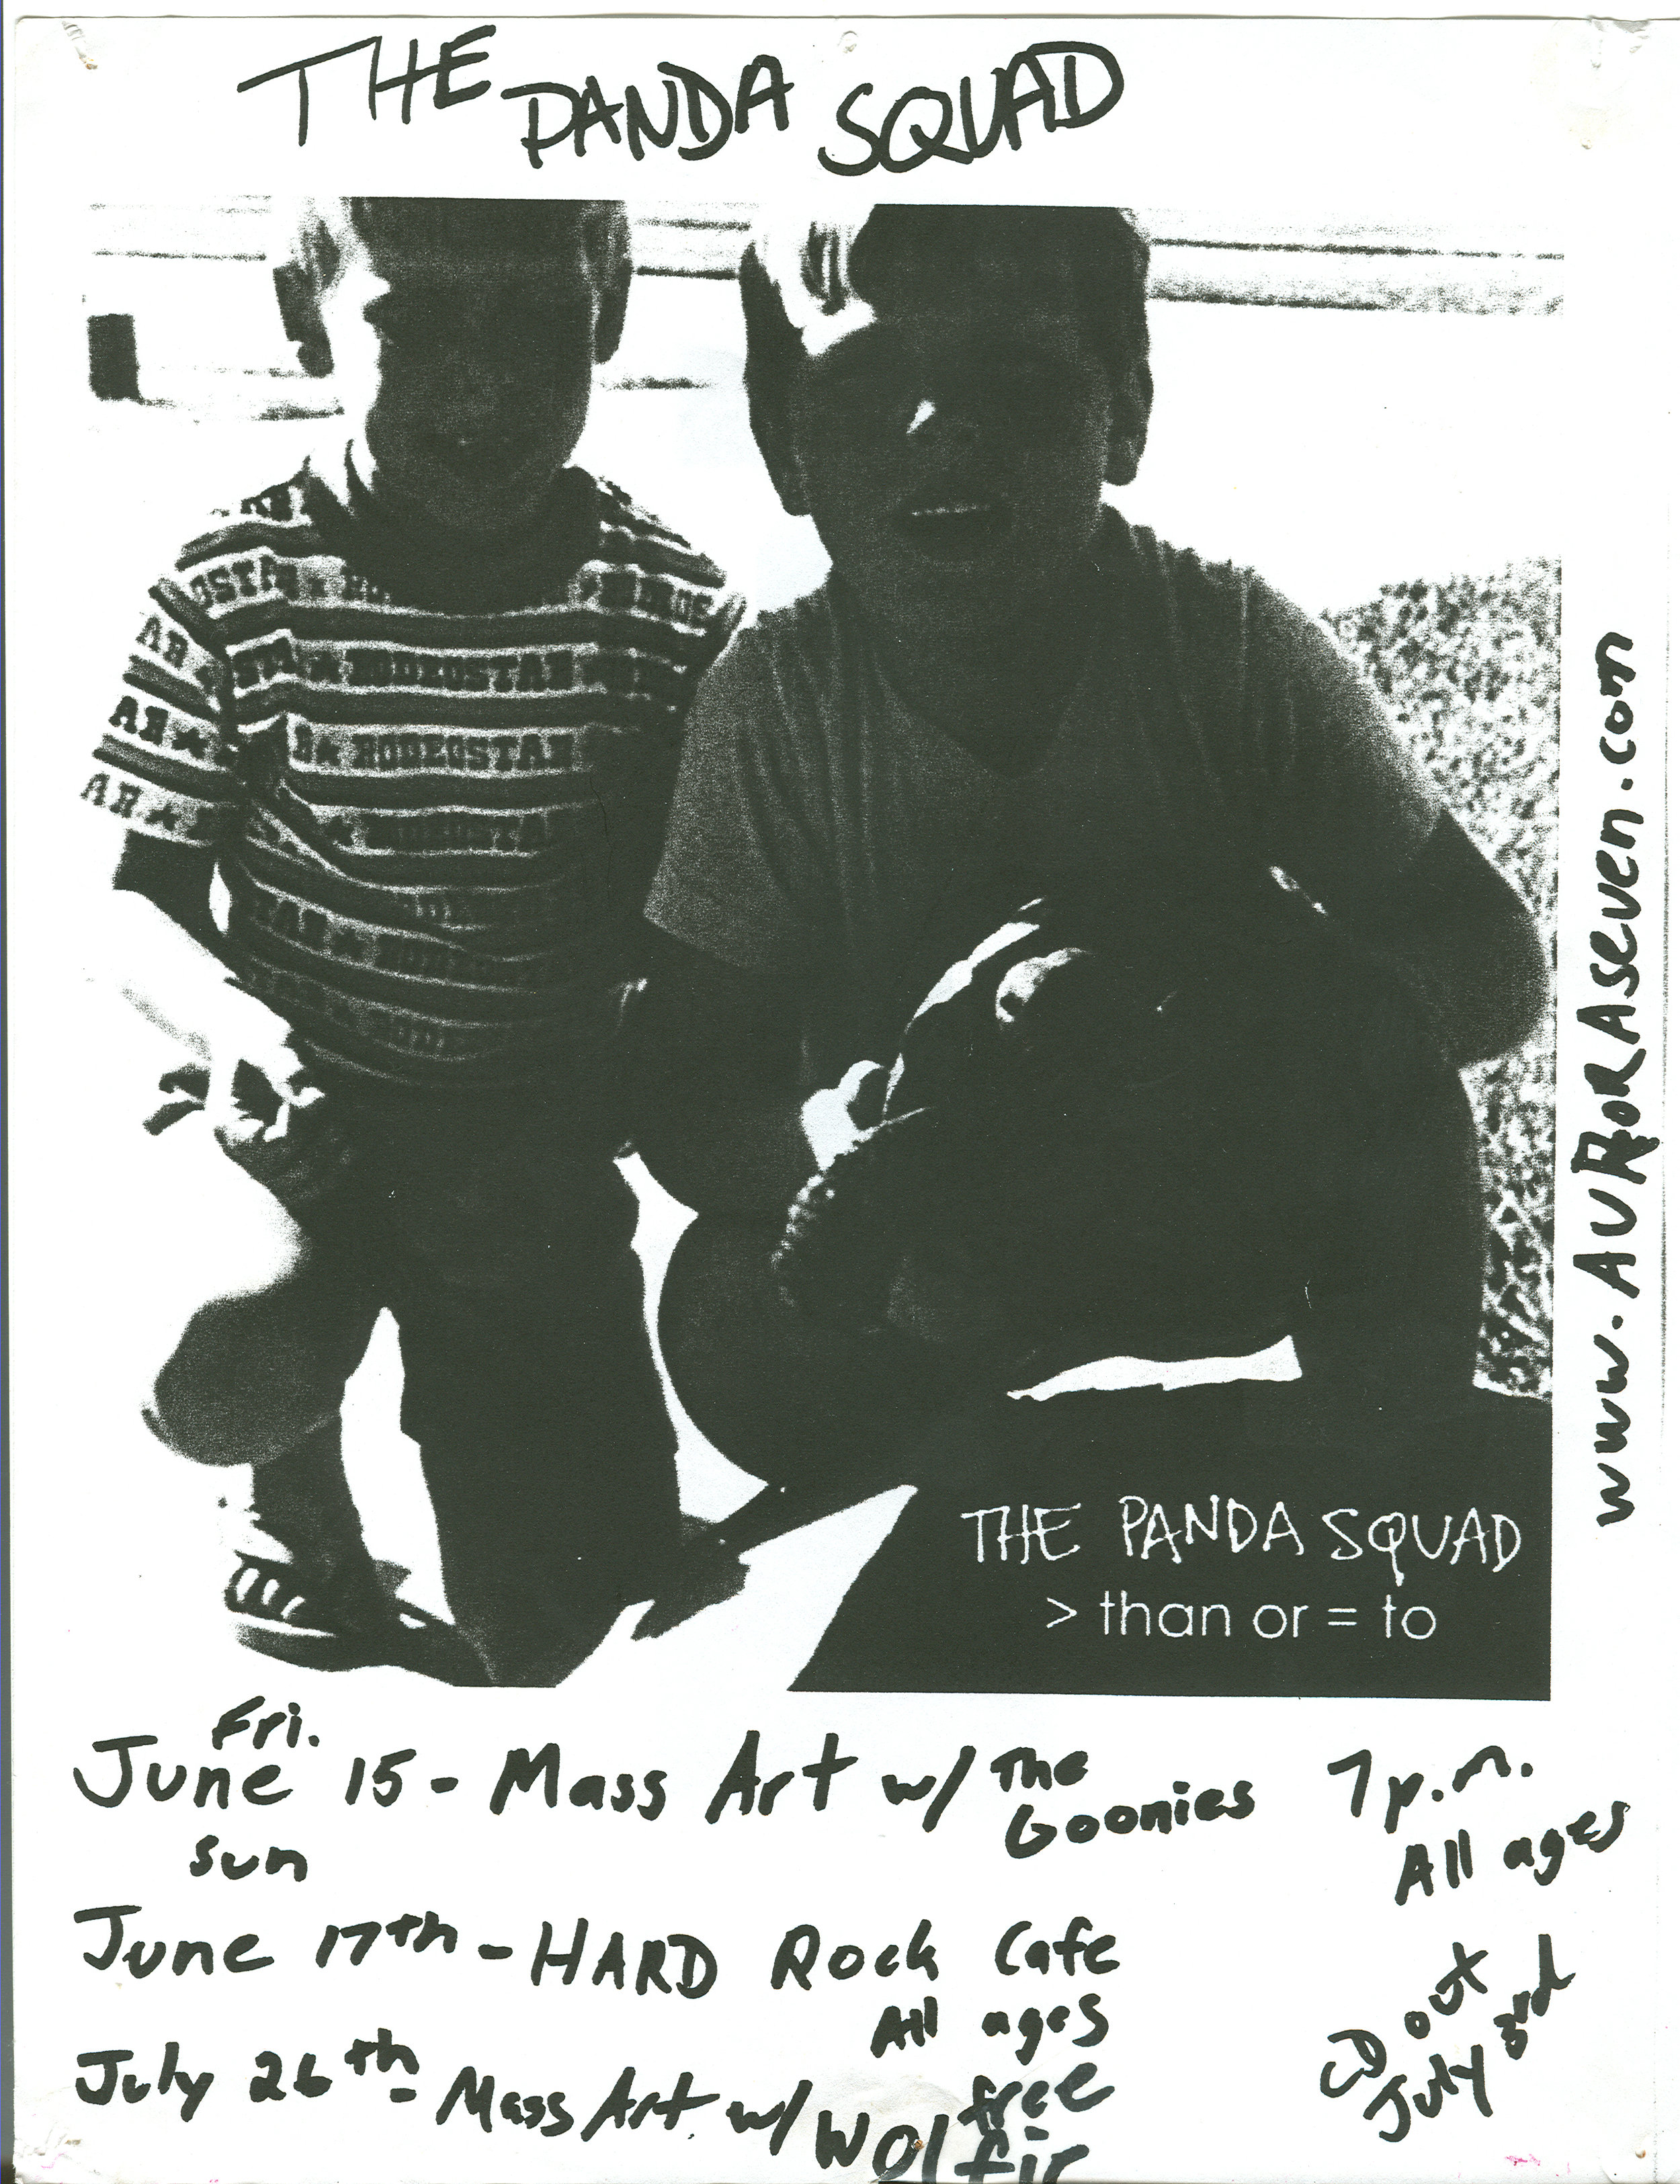 06.15.01-BOSTON-MASSART-PANDA_SQUAD.jpg